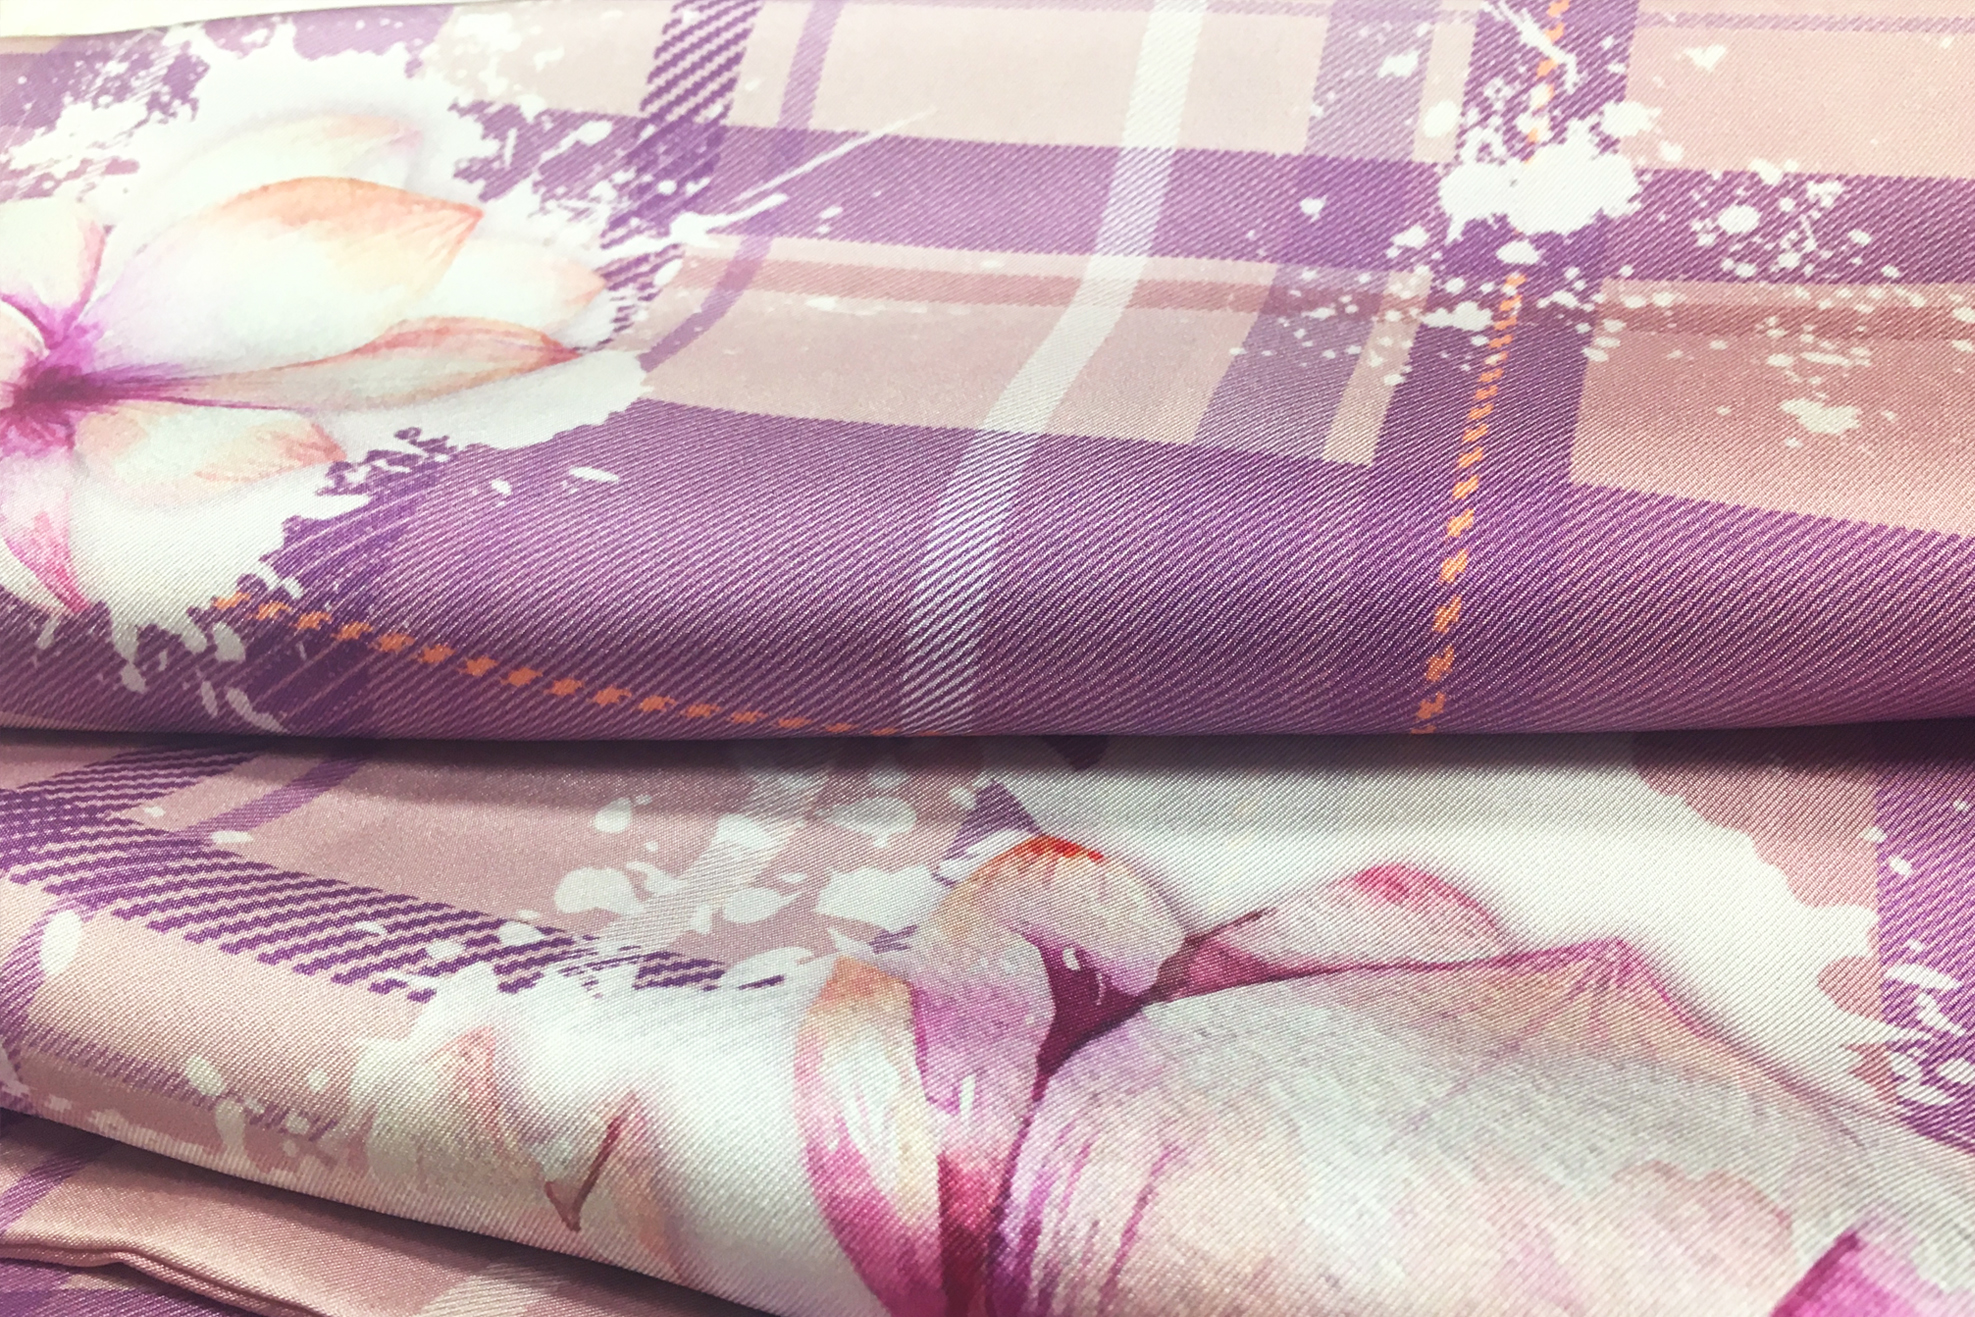 HIGHLAND FLORALS - 100% Mulberry Silk Twill.Reversible design featuring Floral Plaid and plain Tartan design.